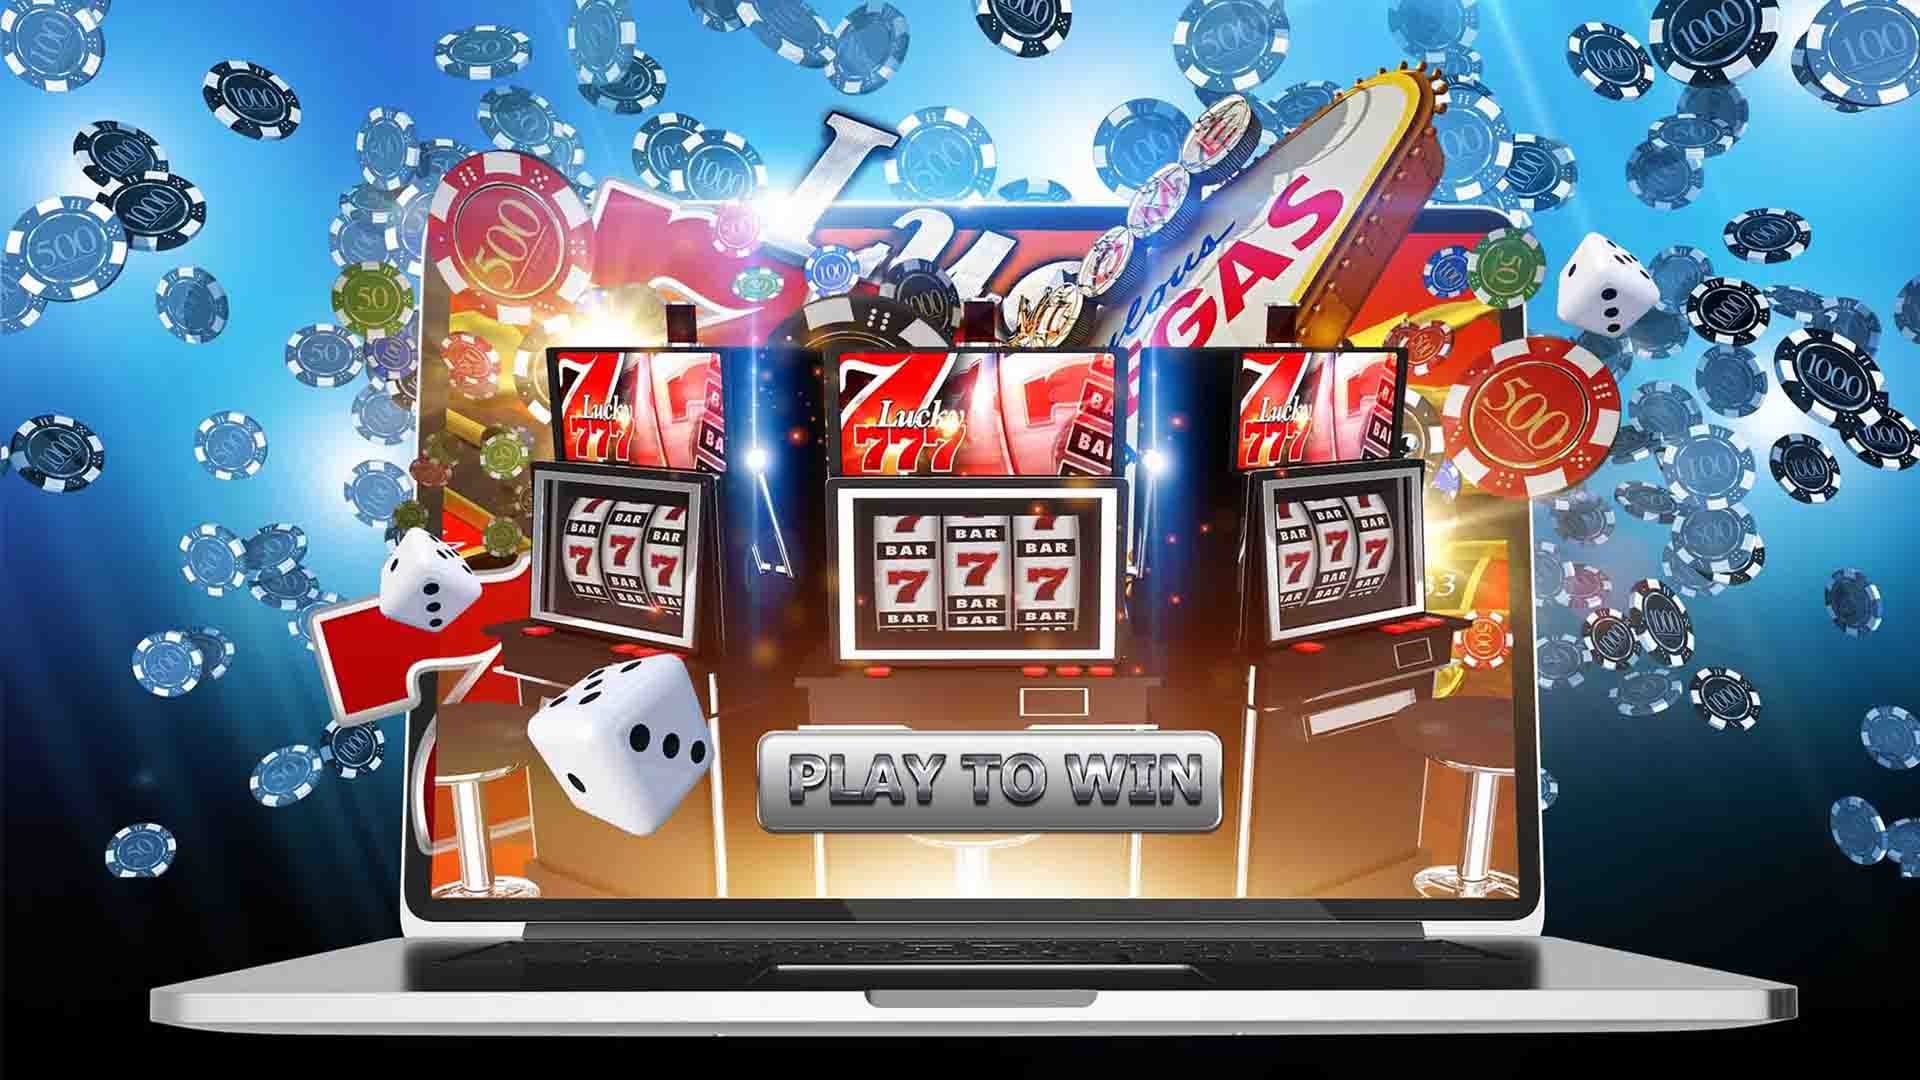 Things you need to know about gambling sites